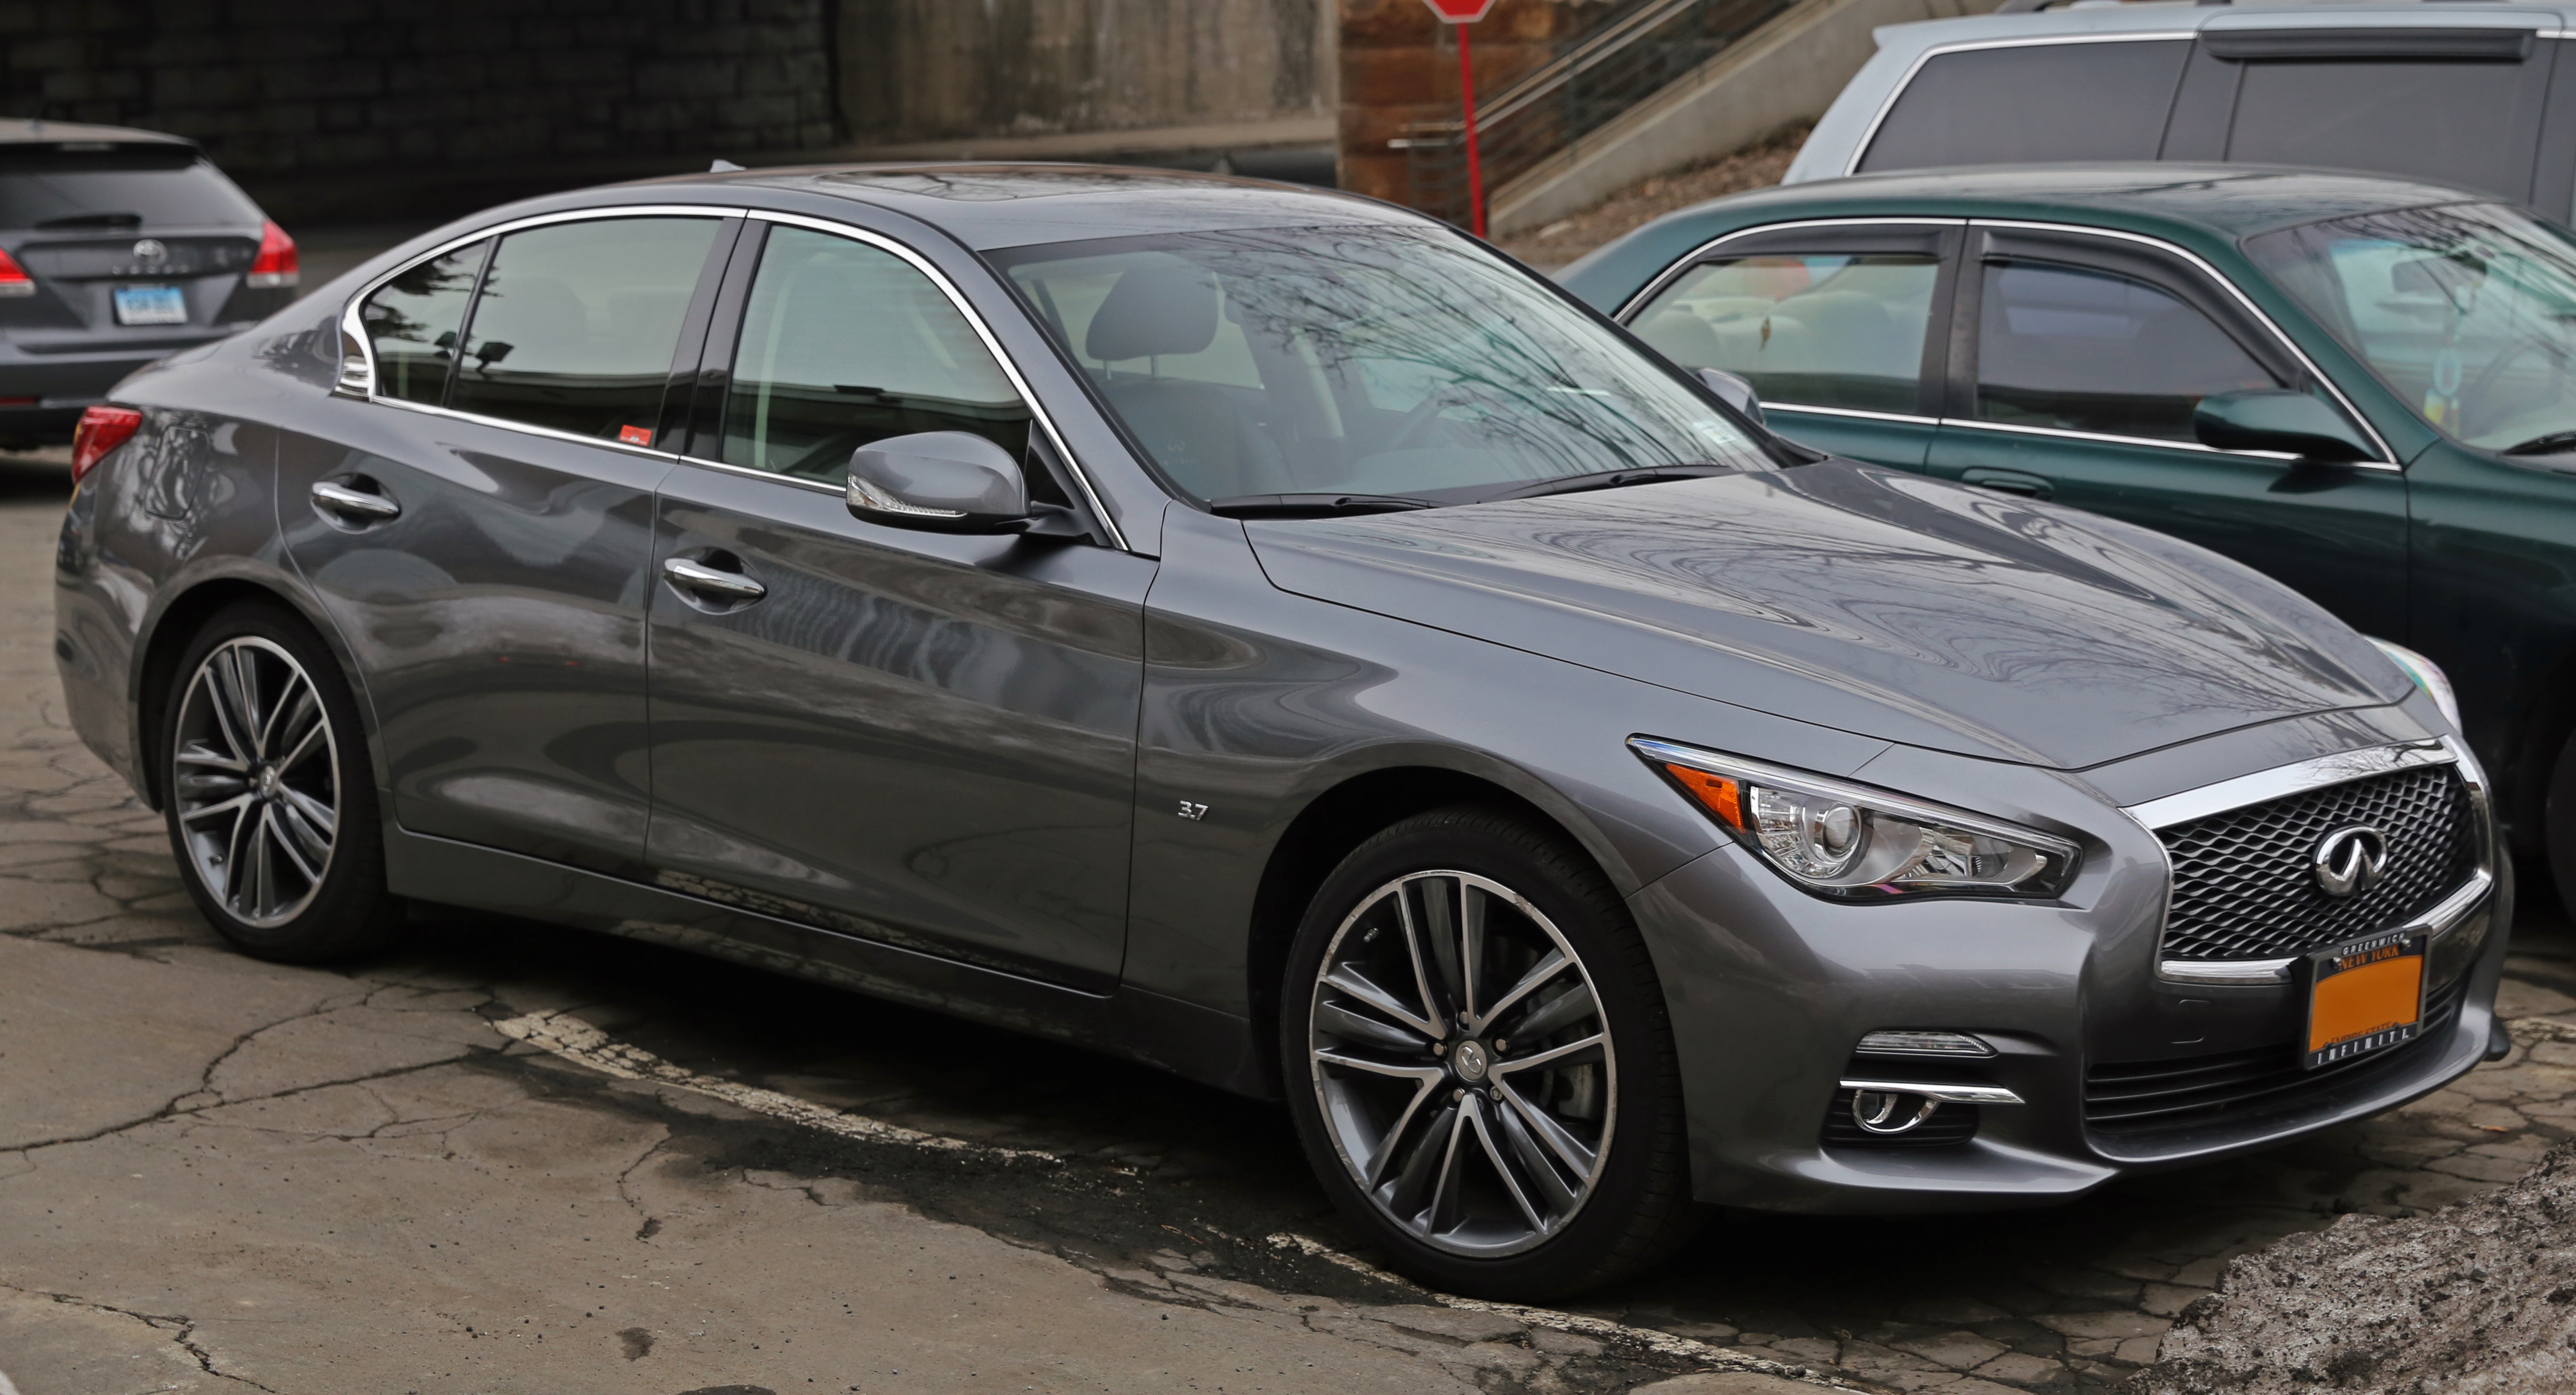 File 2014 Infiniti Q50 3 7 AWD front right Wikimedia mons